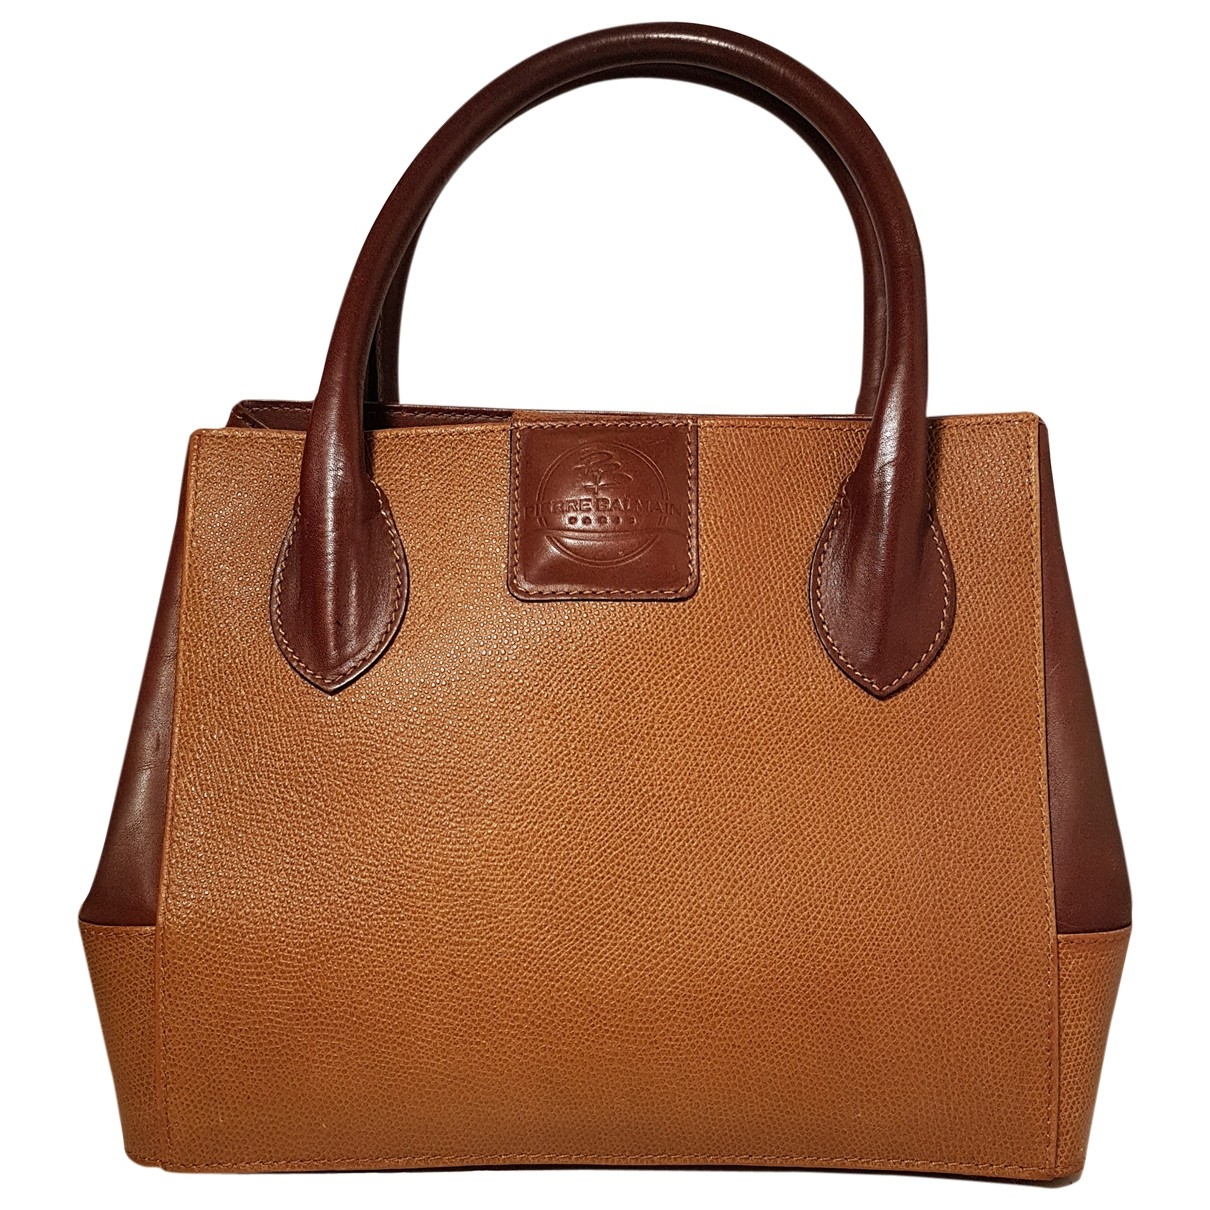 Pierre Balmain \N Camel Leather handbag for Women \N